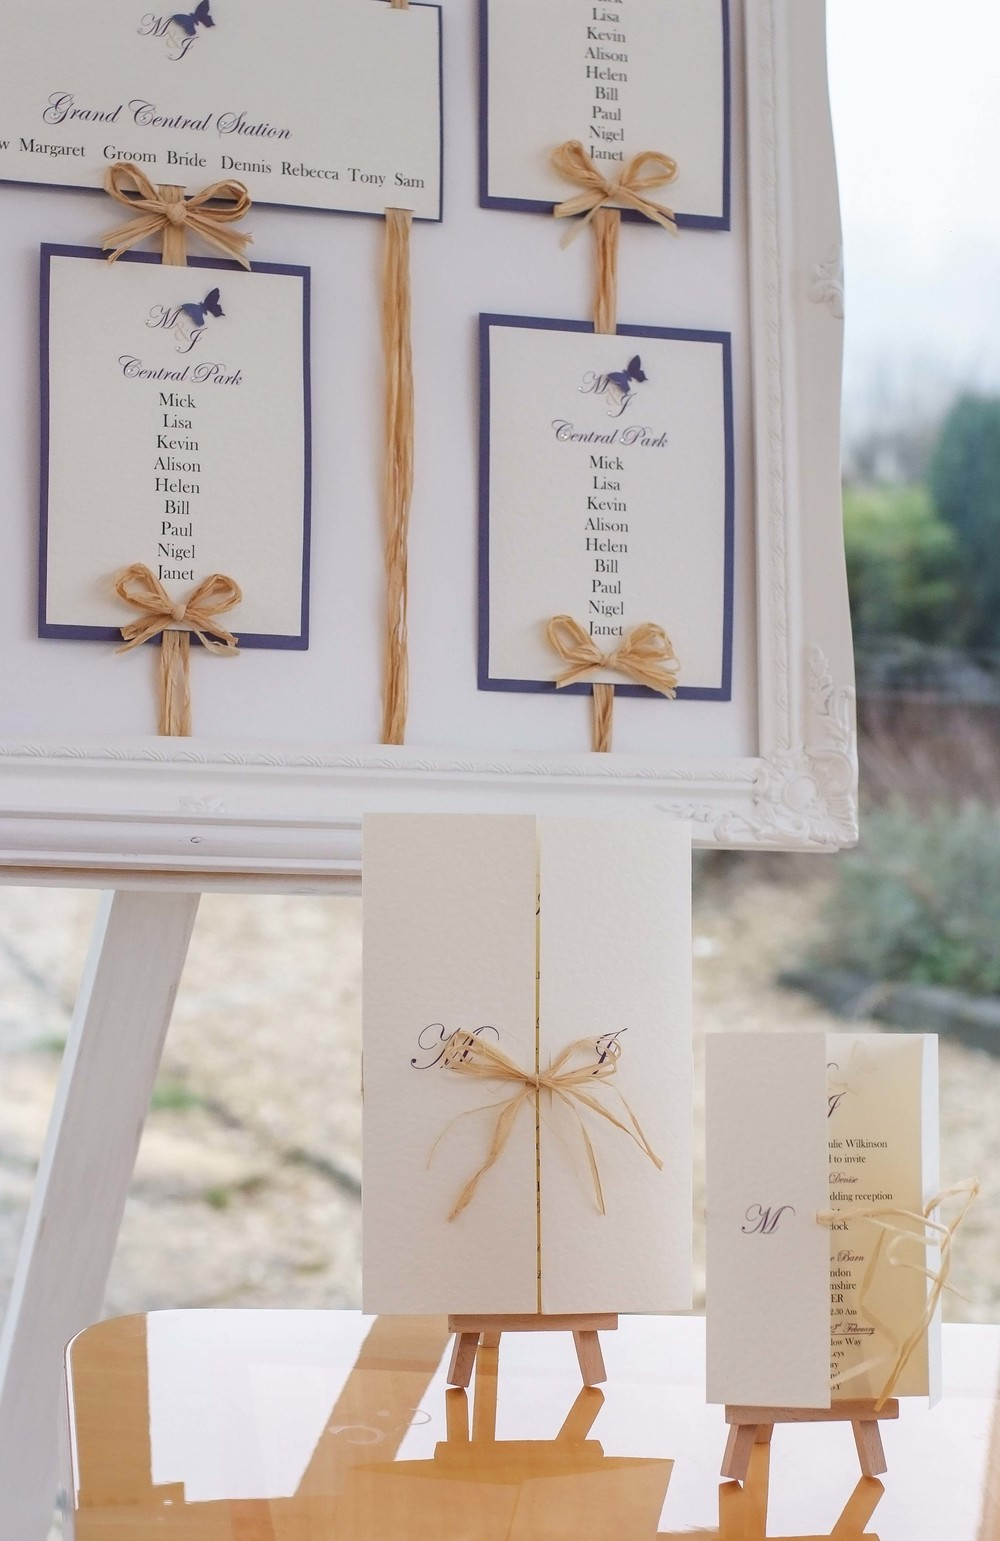 Cadbury's Purple Rustic Wedding Invitation in the Rustic Elegance collection from VivienB's